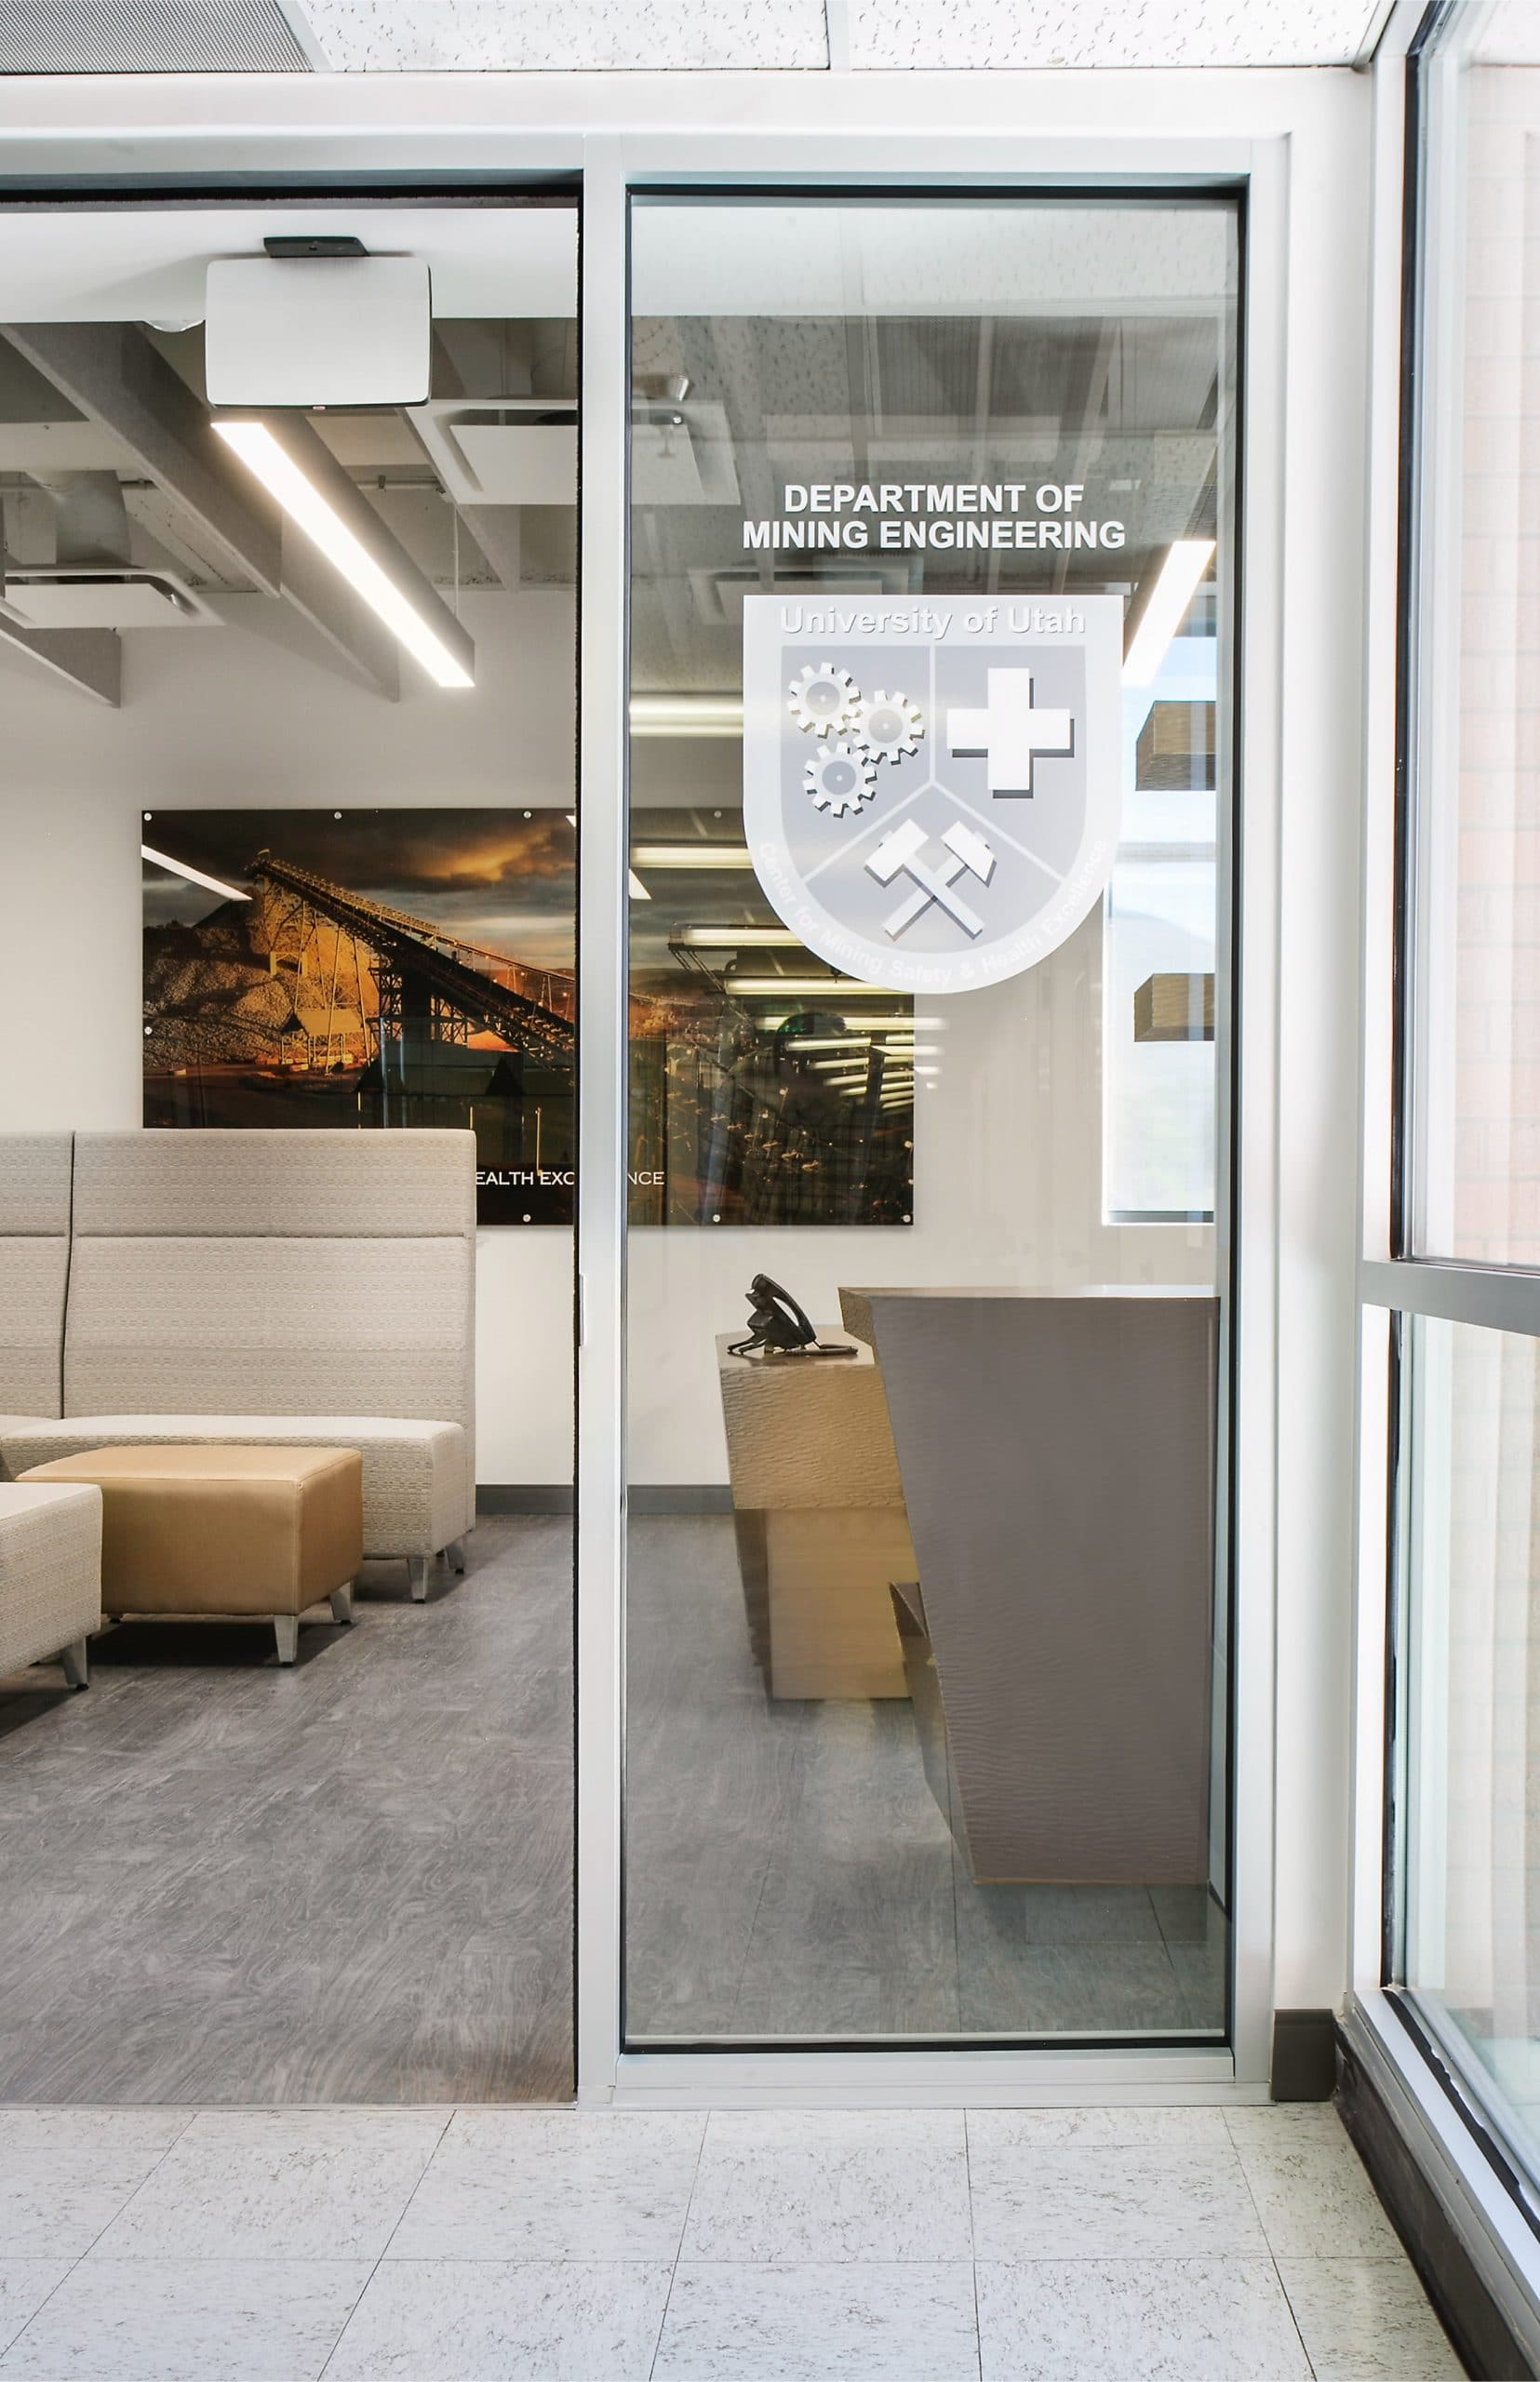 Entrance to the University of Utah Newmont Safety Classroom, architectural design by Elliott Workgroup